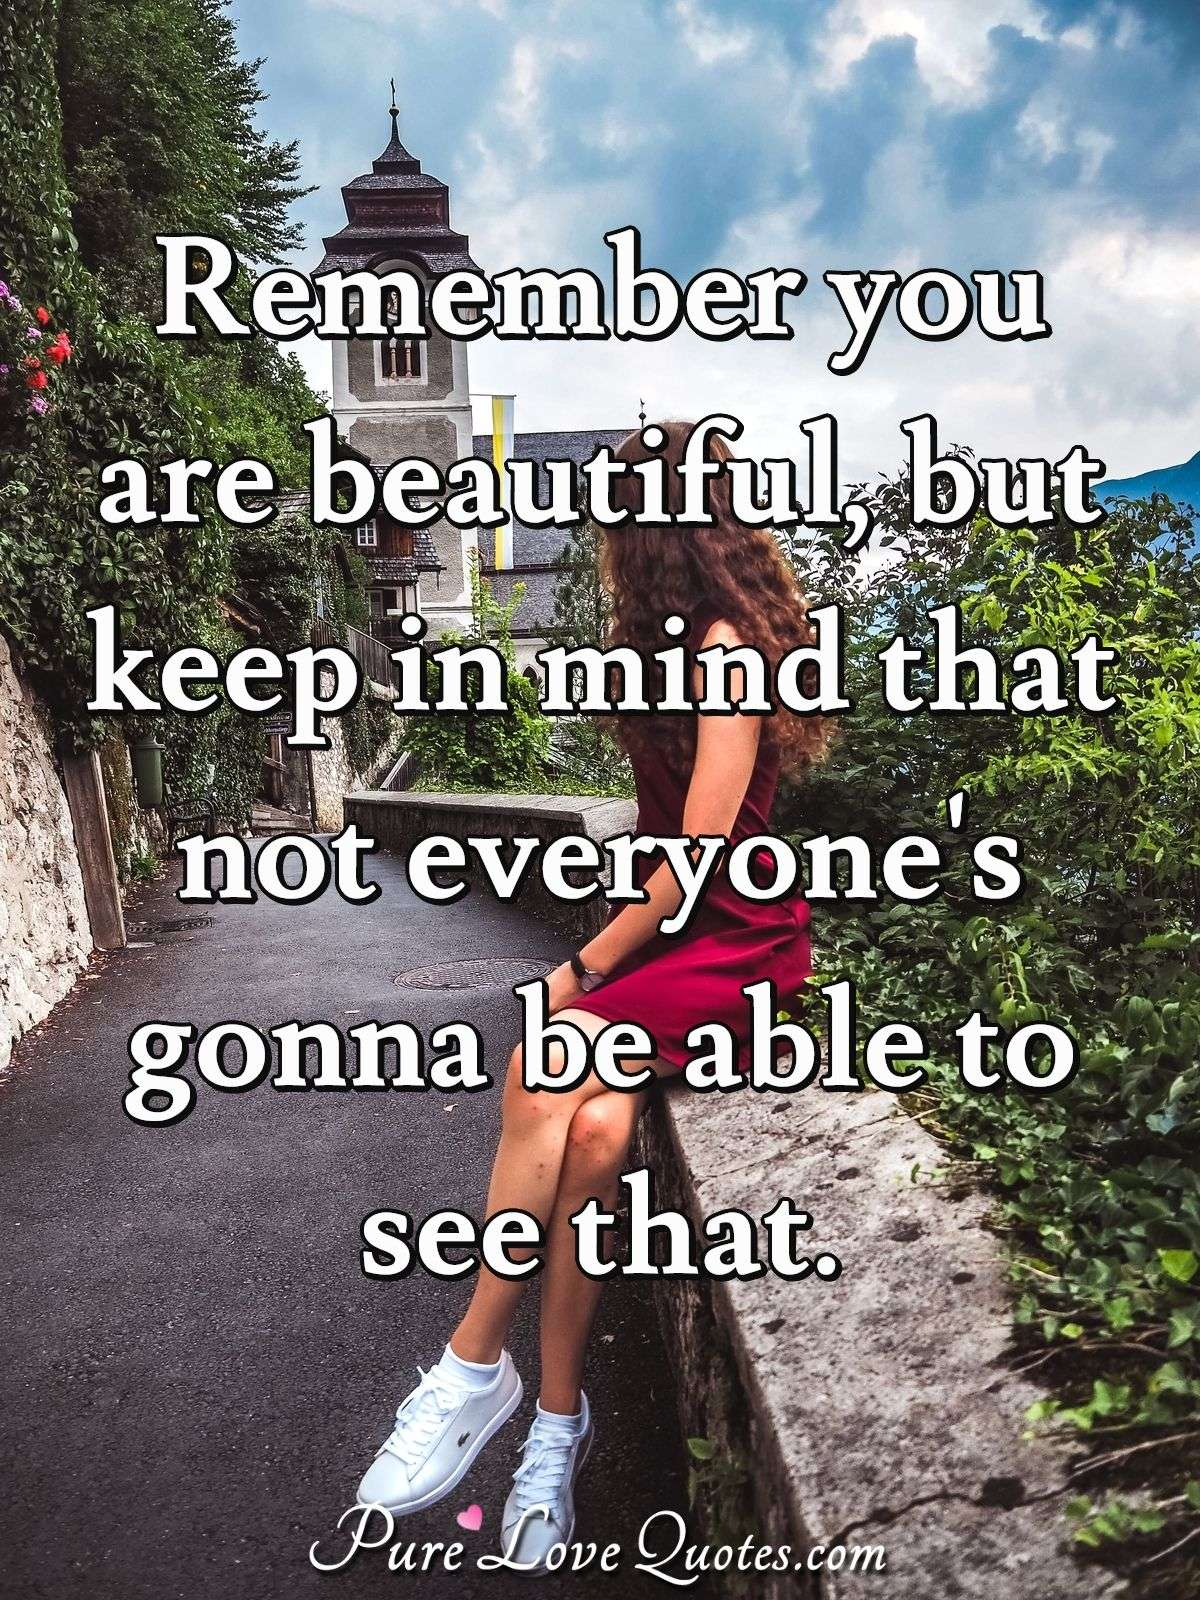 Remember you are beautiful, but keep in mind that not everyone's gonna be able to see that. - Anonymous